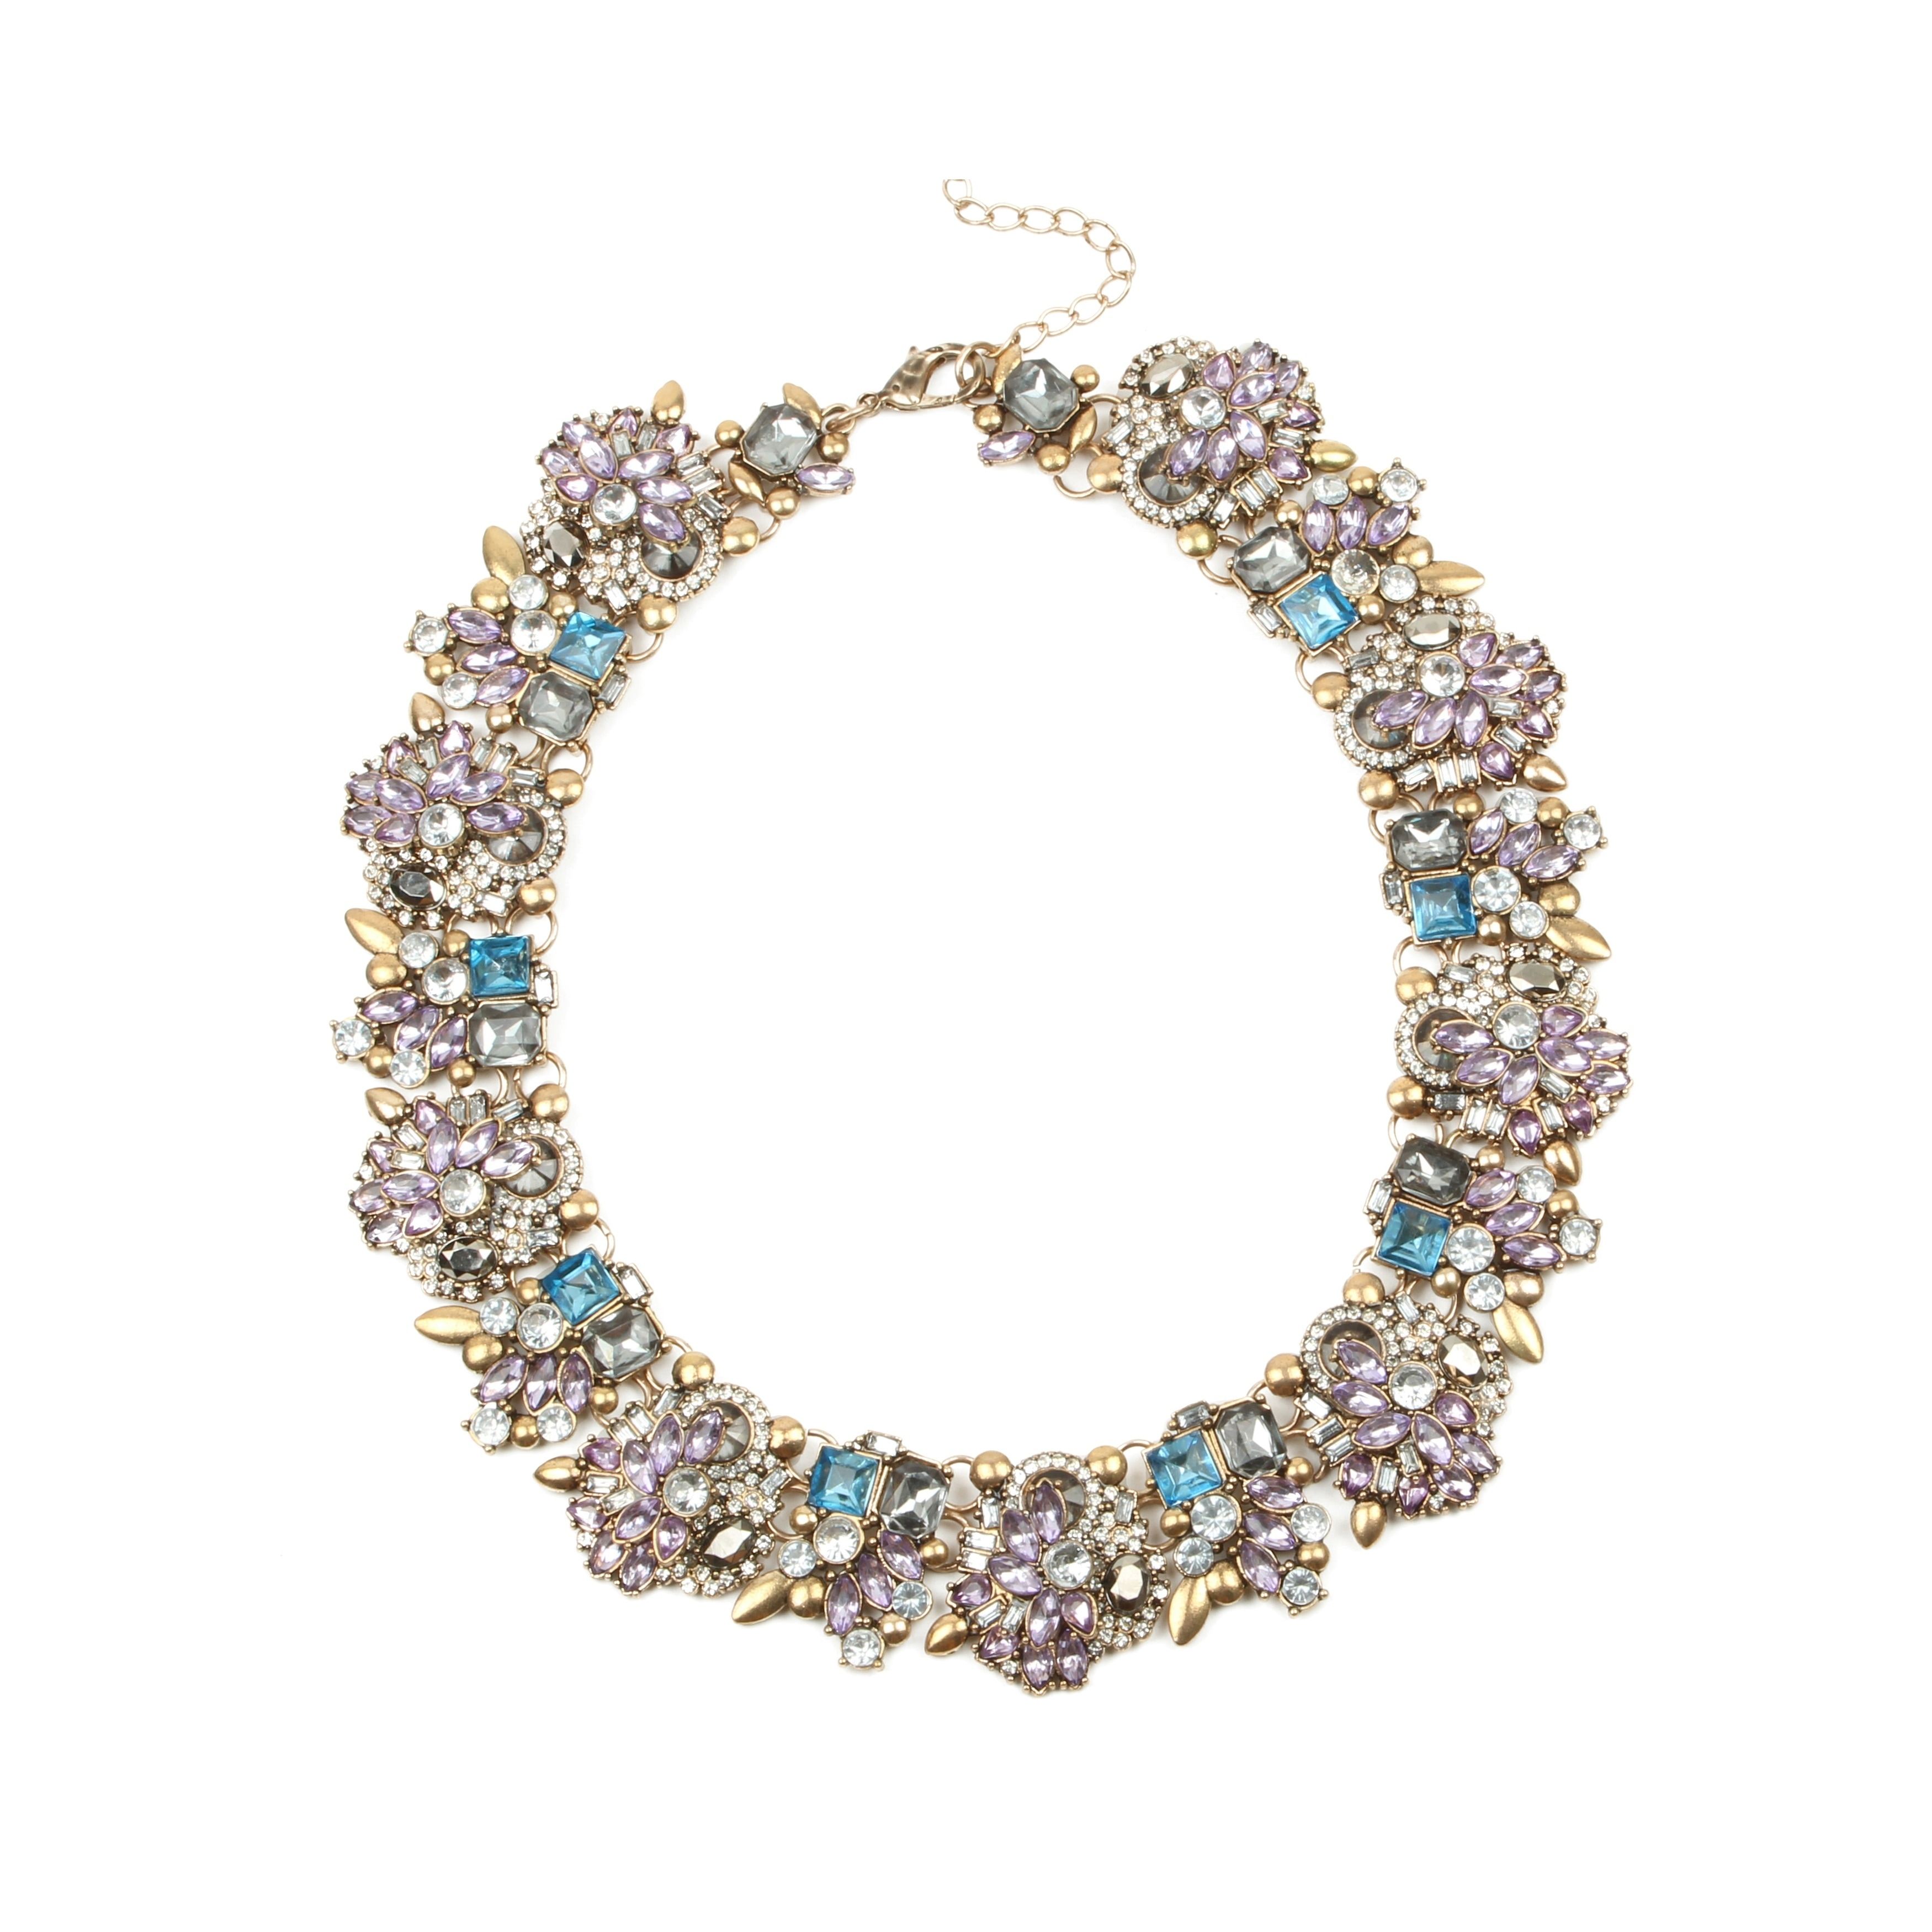 Eye Candy LA 10 inch Lavender Glam Stone Wreath Necklace,...